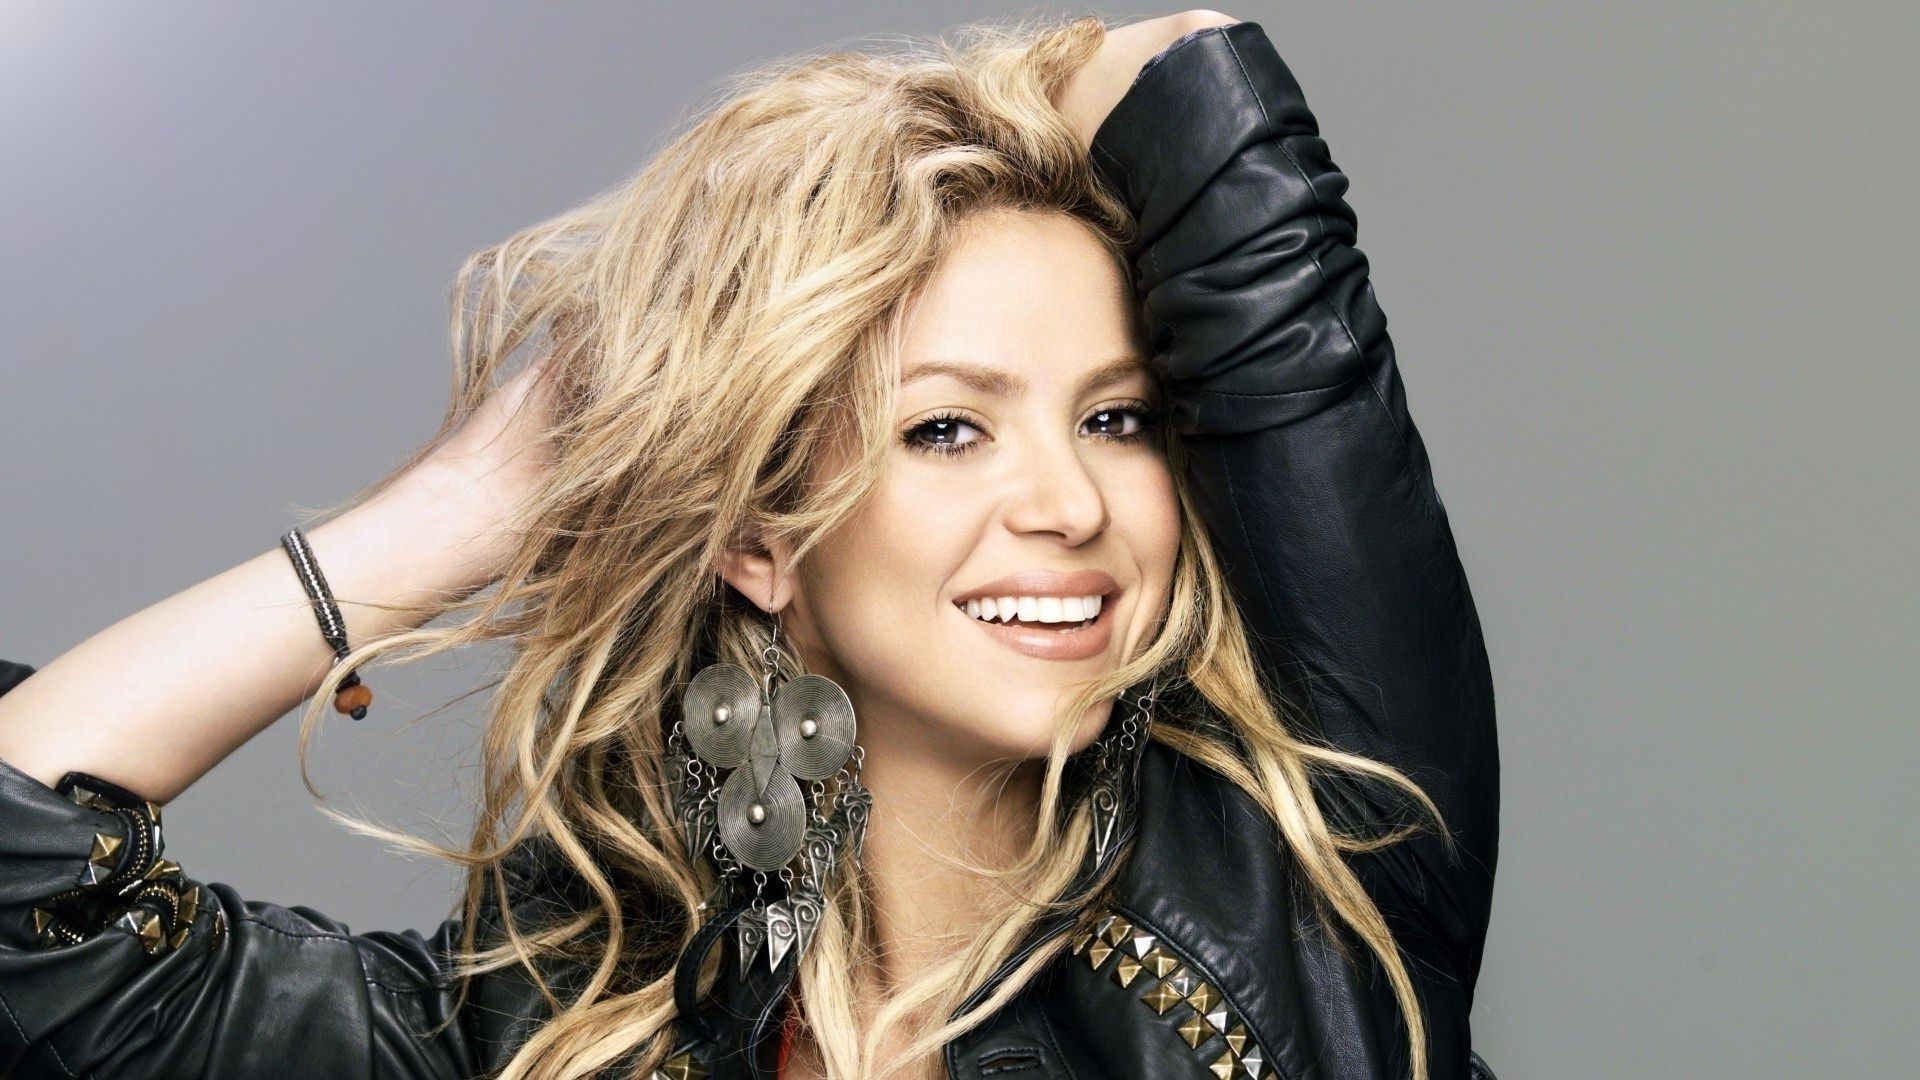 Free Download Pure 100 Shakira Hd Wallpapers Latest Photoshoots Beautiful Images And More For Pc Laptops Iphon Hair Styles Braided Hairstyles Shakira Hair